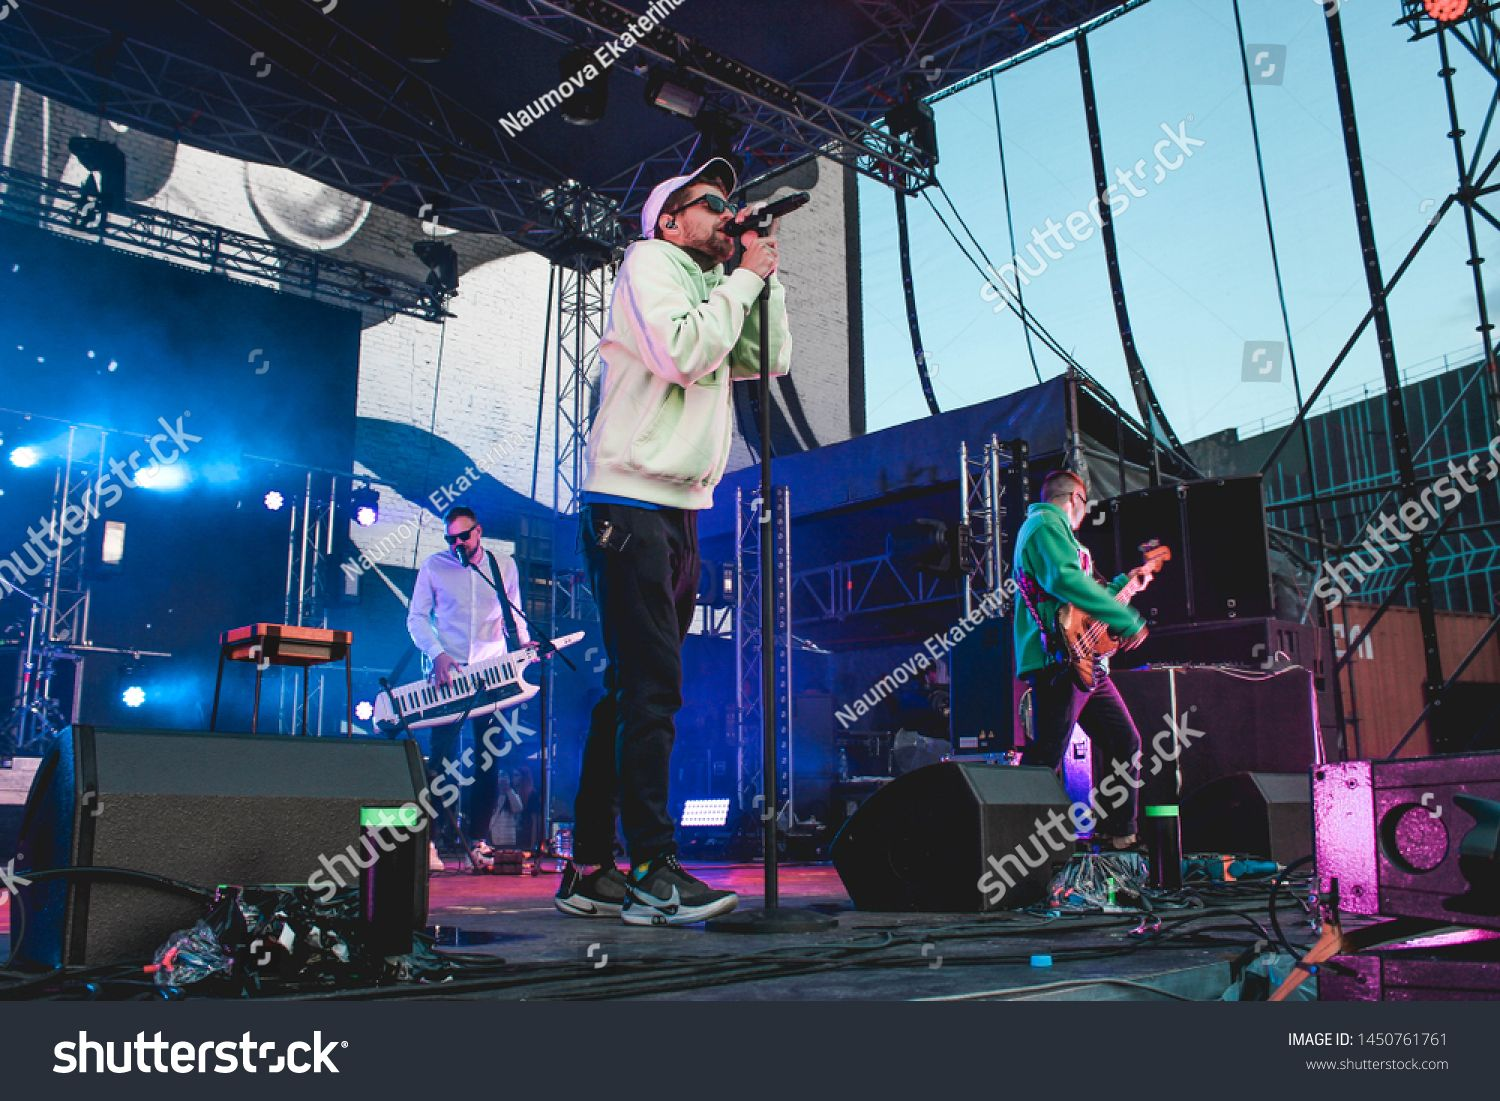 Saint Petersburg, Russia - July 6, 2019: Rhymes Show Episode 3 Rap Music Festival in creative space Street Art M #Ad , #AFFILIATE, #Show#Rhymes#Episode#Music